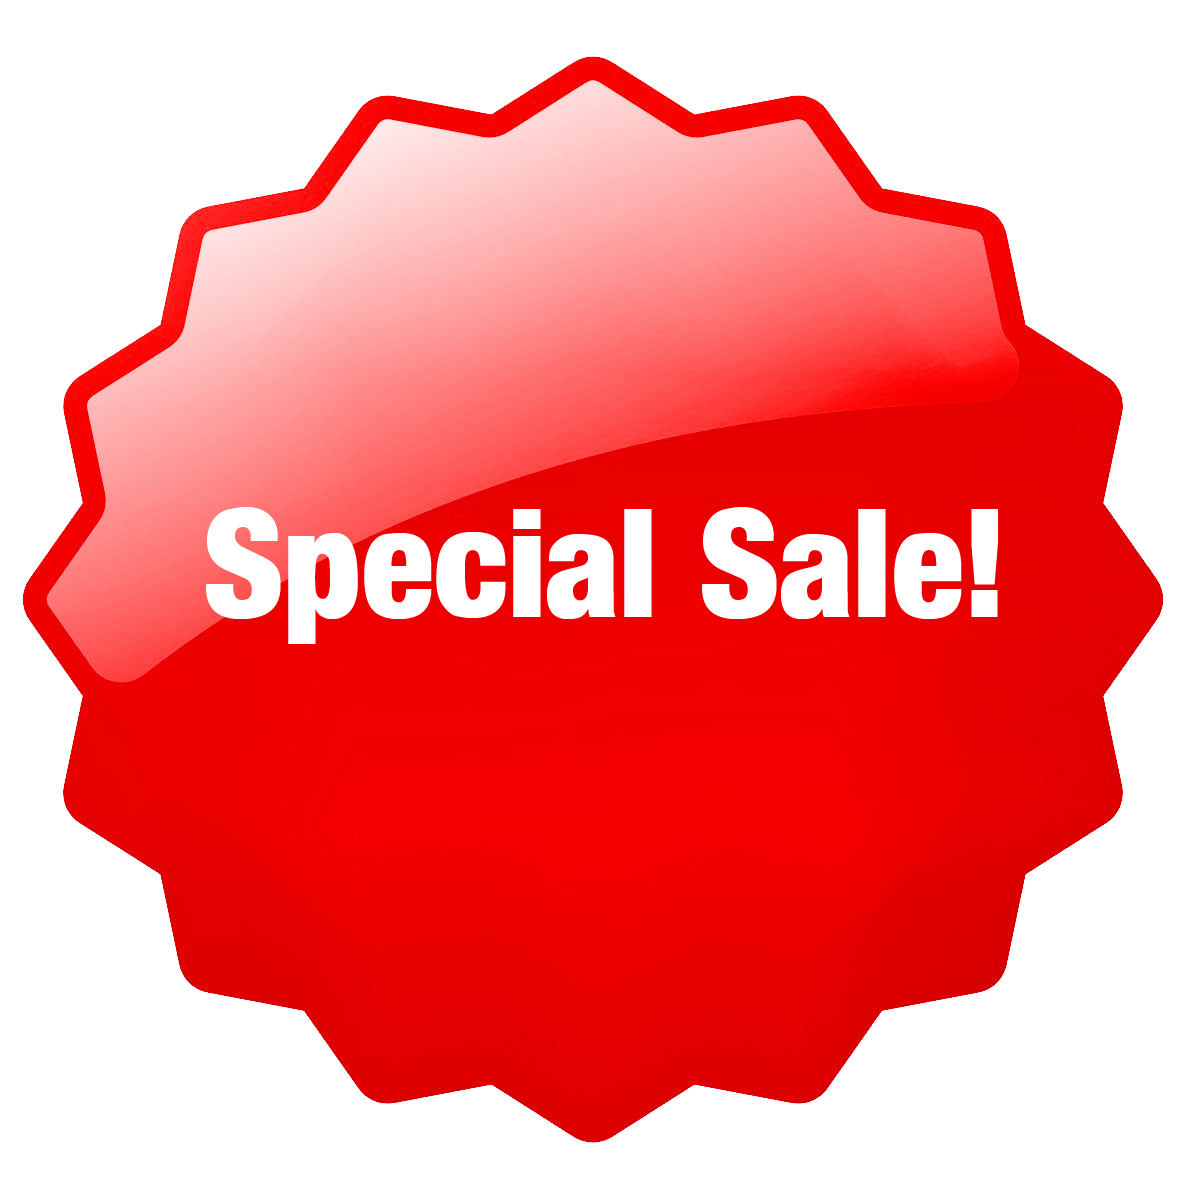 Special Buy Savings Today Only! Free Delivery * Savings End: HR. MIN. SEC. Join our daily specials mailing list. Enter Email Address. Sign up Created with Sketch. * Online Only. While Supplies Last. Countdown clock is based on Eastern Standard Time (EST).